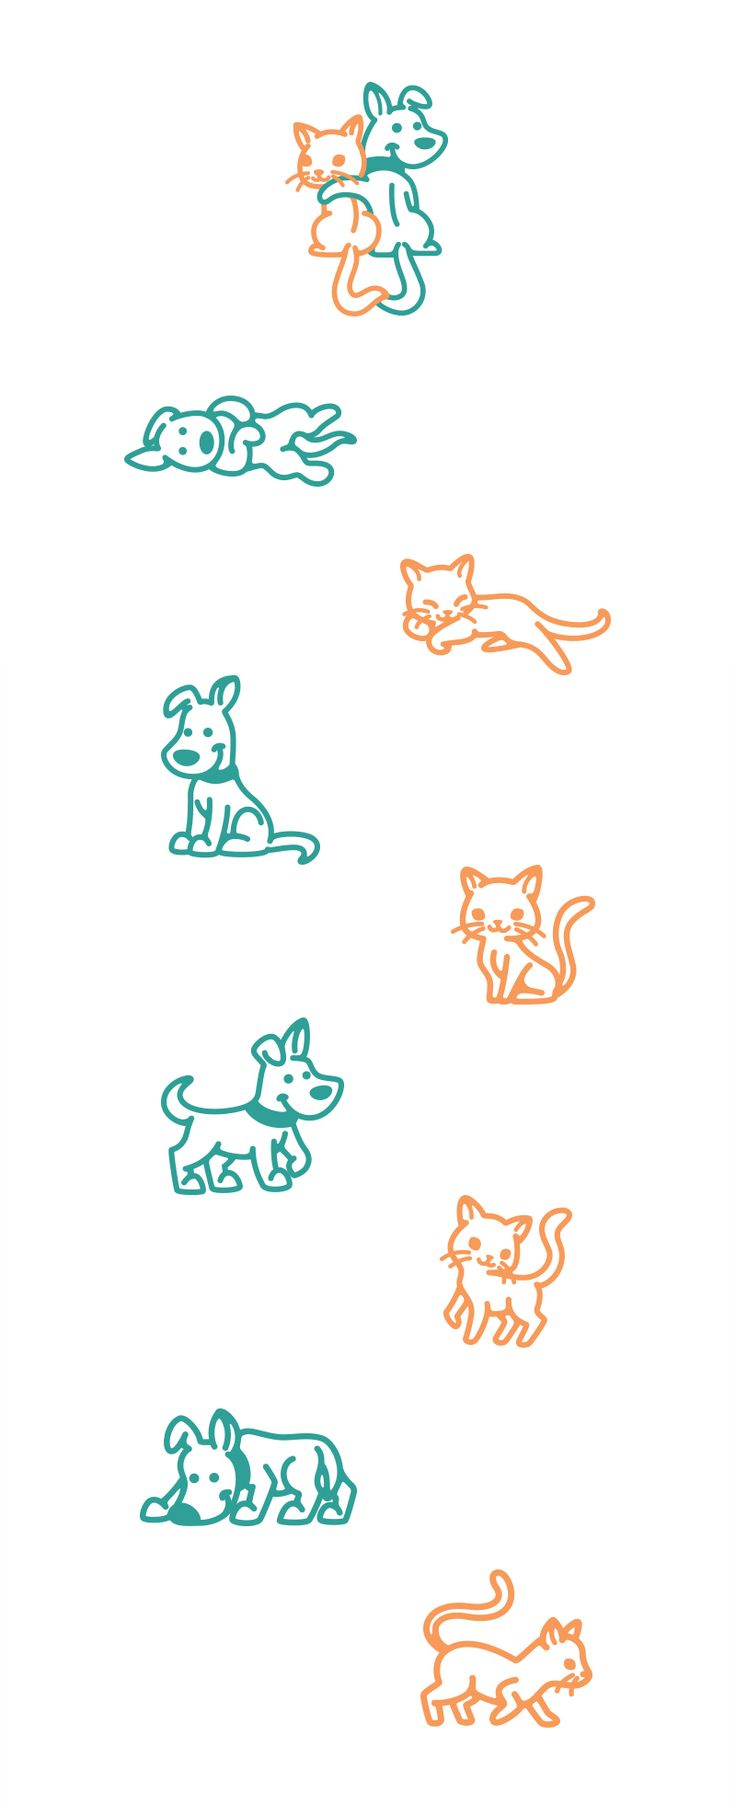 Dog&Cat #dog #cat #dogs #cats #puppy #cute #logo #illustration #icon #positions #poses #creative #vector #kreatank #designer #DogLogo